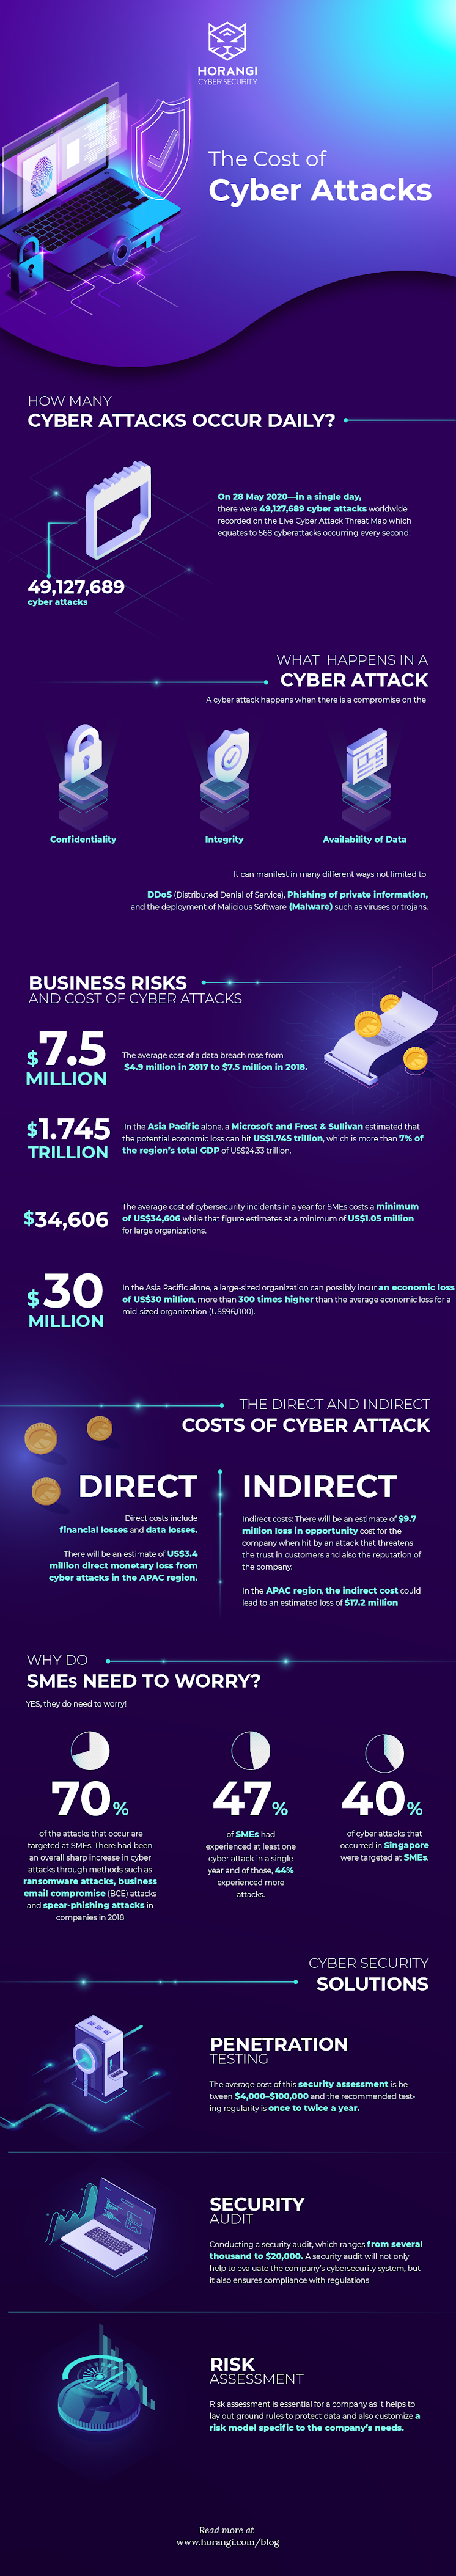 The Cost of Cyber Attacks #infographic